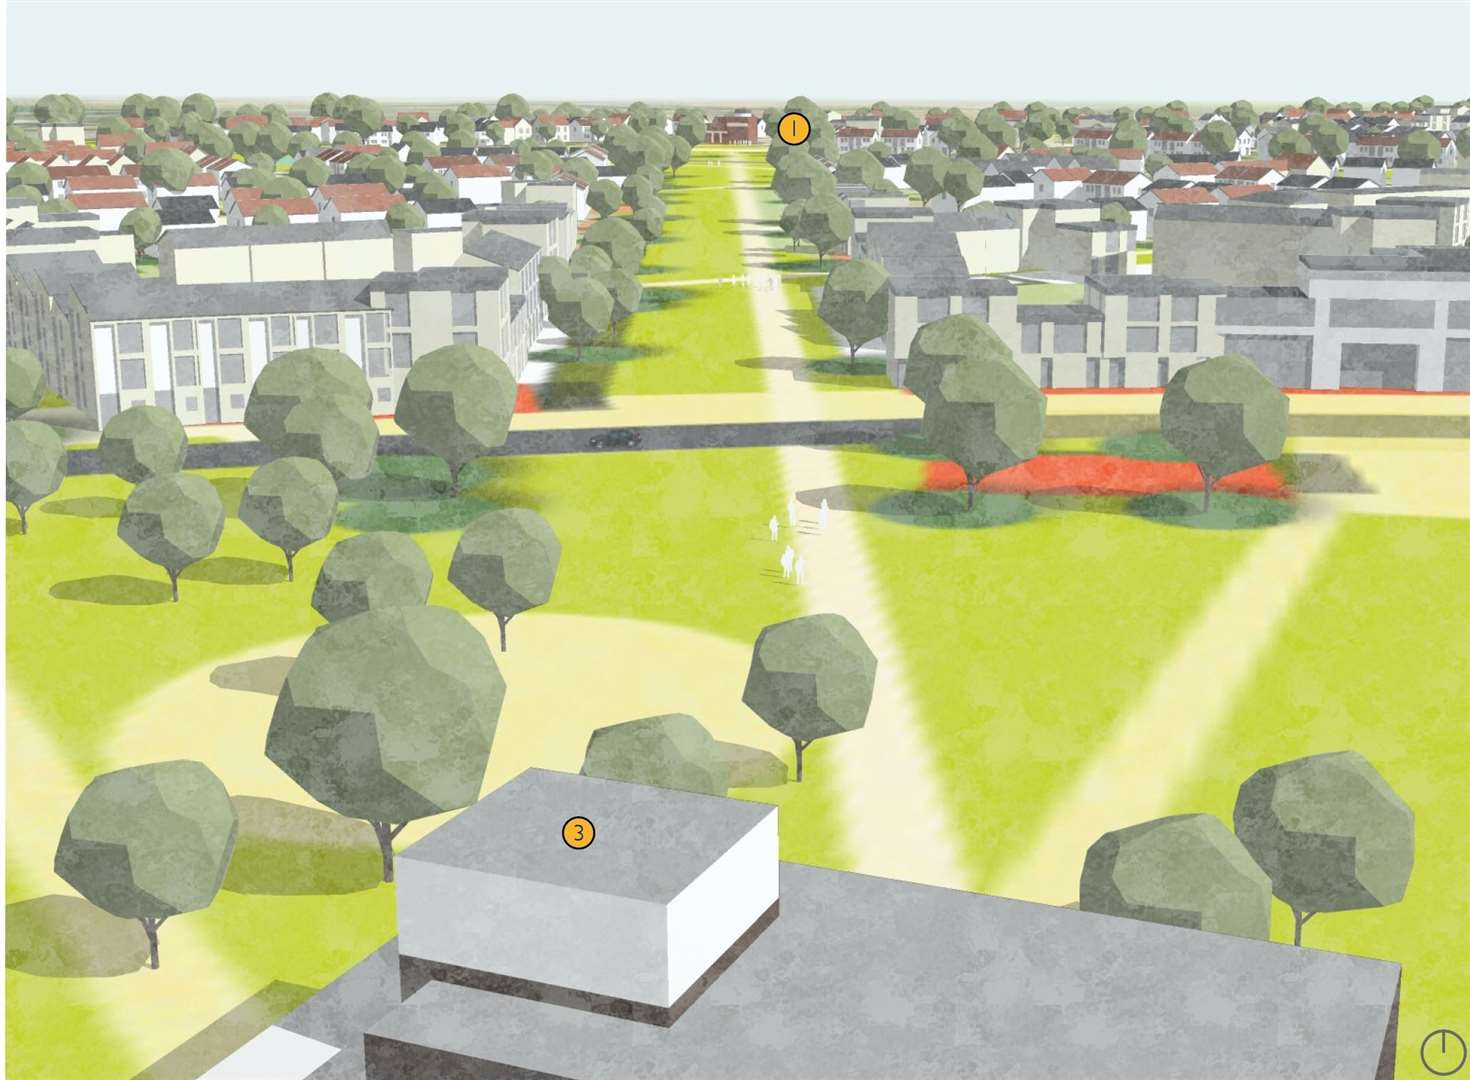 Stone Hill Park has submitted a planning application to turn the former Manston airport into homes and business space